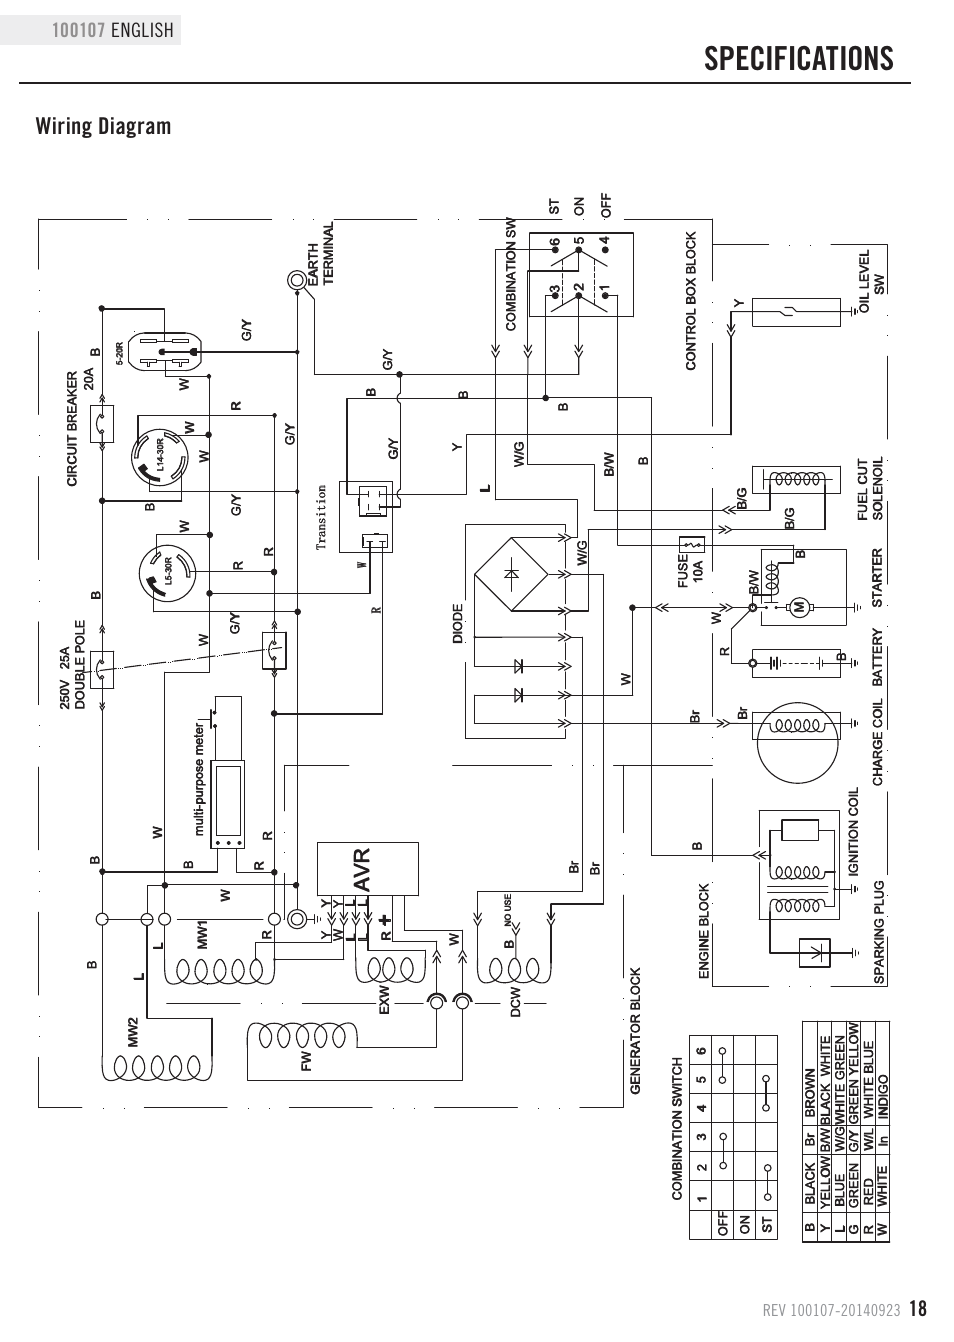 champion generator wiring diagram - wiring diagram schematic generator wiring diagram and electrical schematics simple generator circuit diagram 12mr-anitra.de